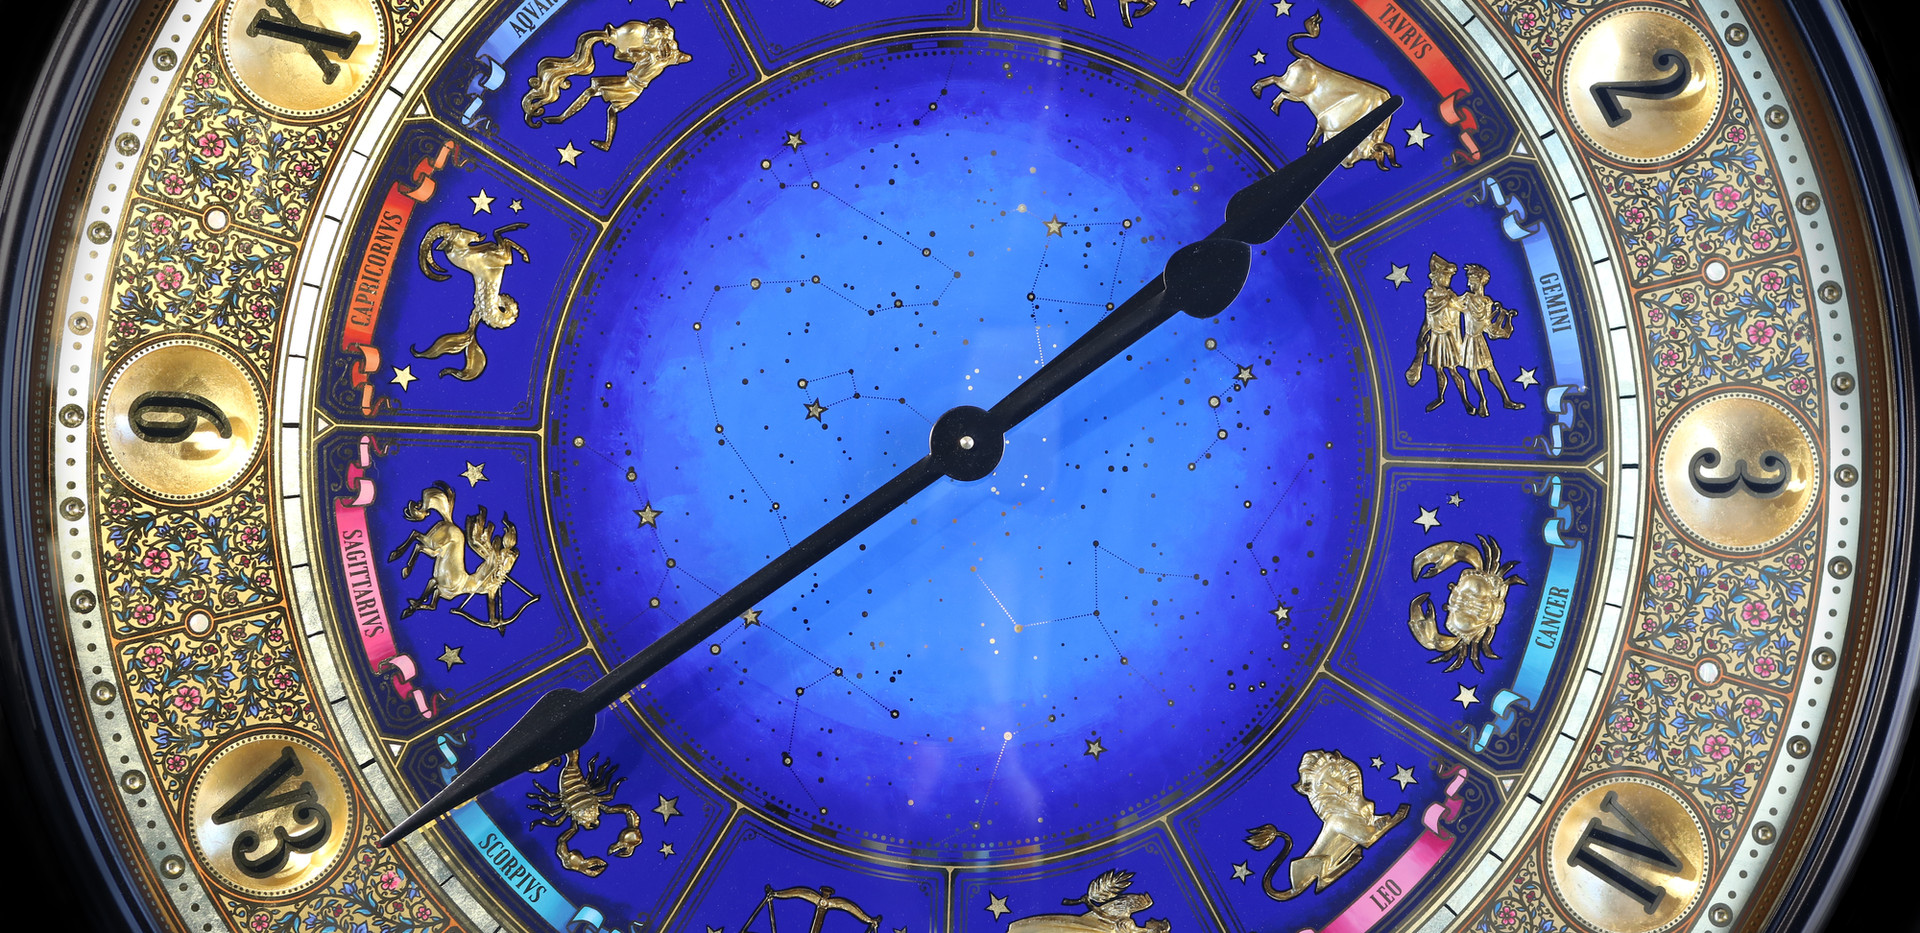 Zodiac Clock close-up